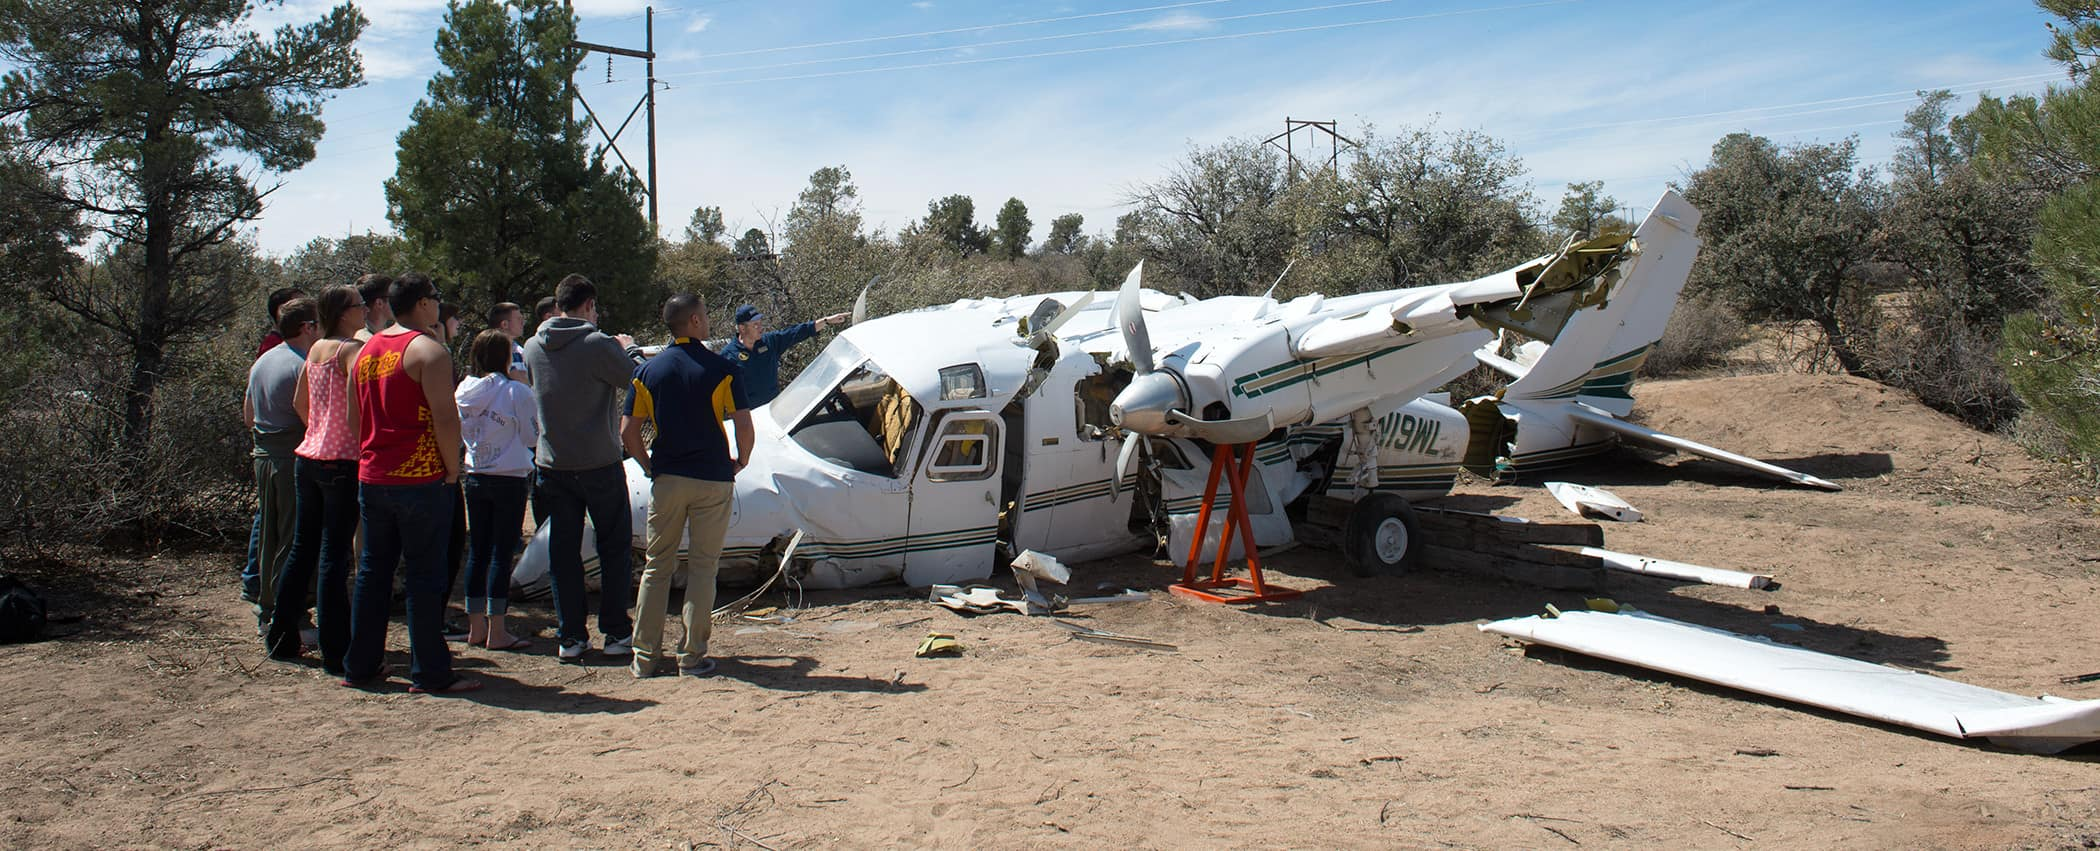 Embry-Riddle Prescott students examine a plane crash